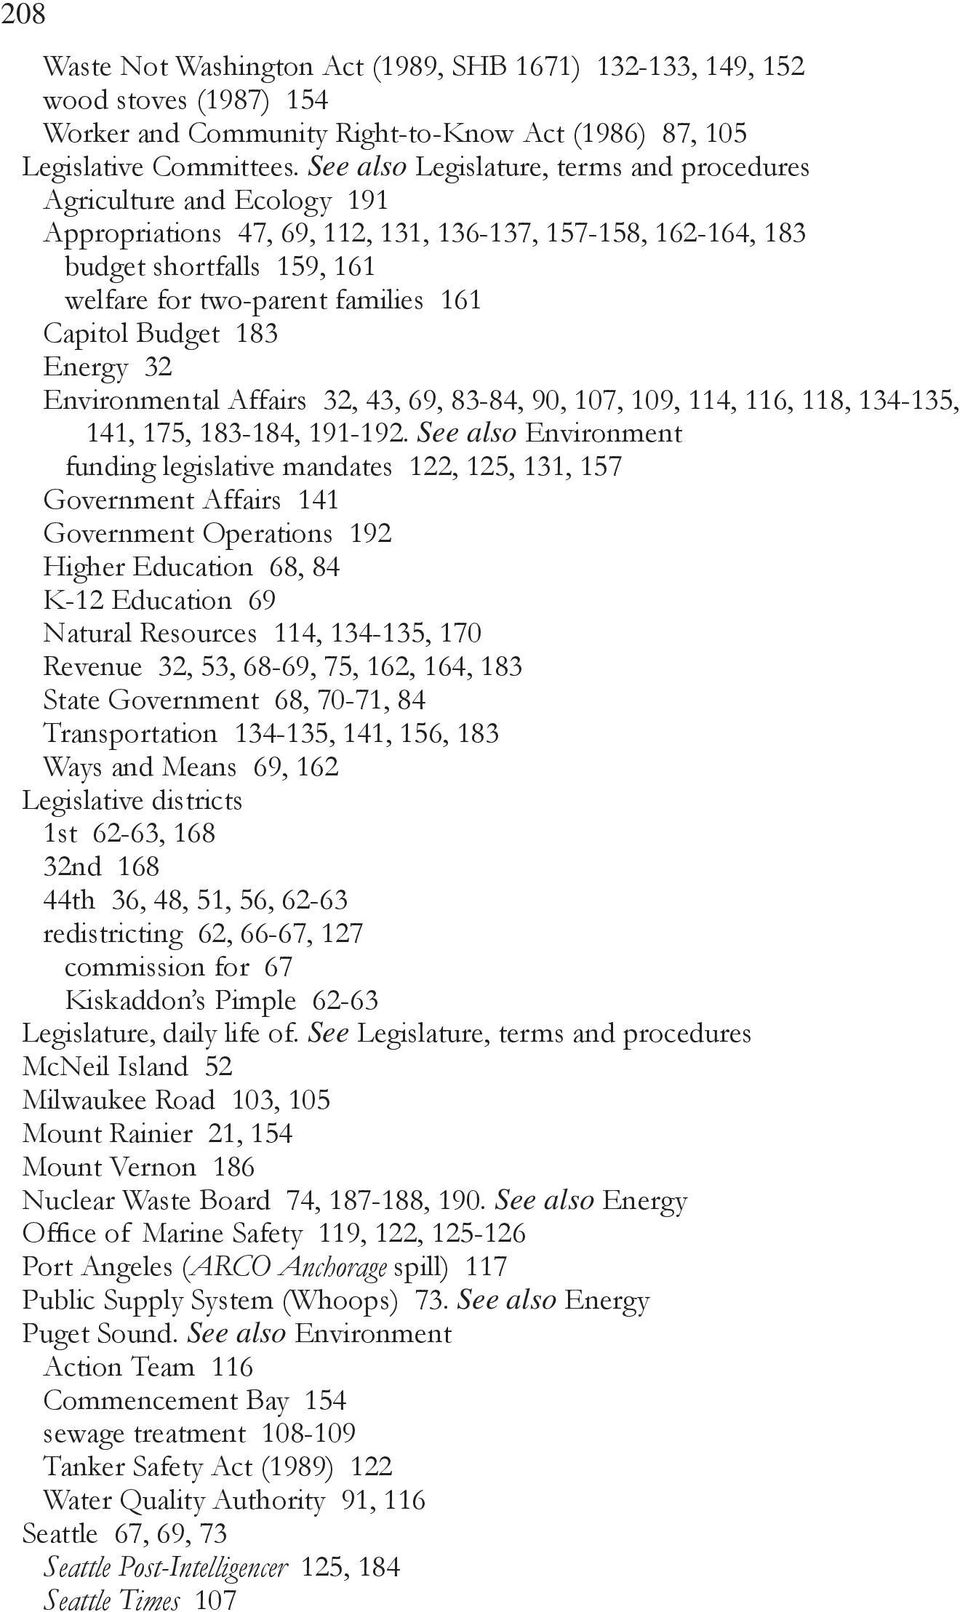 Capitol Budget 183 Energy 32 Environmental Affairs 32, 43, 69, 83-84, 90, 107, 109, 114, 116, 118, 134-135, 141, 175, 183-184, 191-192.